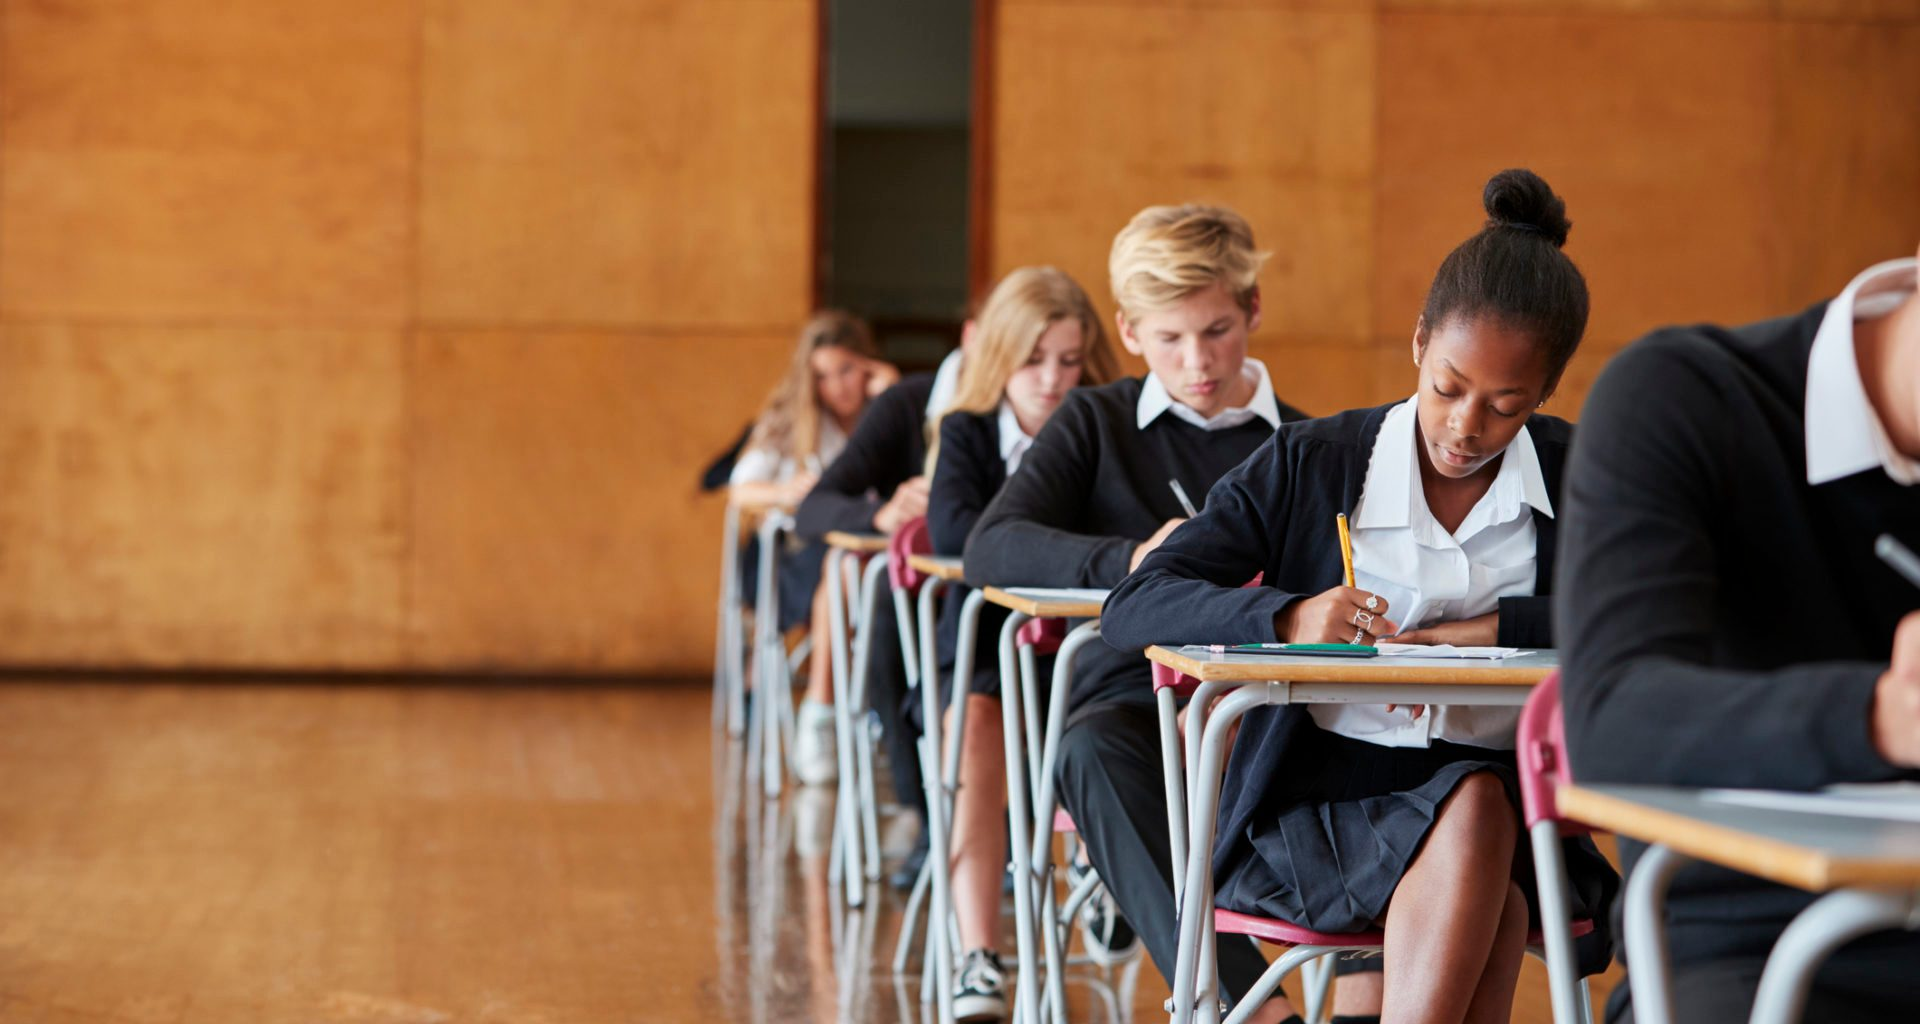 Pupils sitting 'exams in disguise' accuse SQA of 'shambolic' mismanagement 8